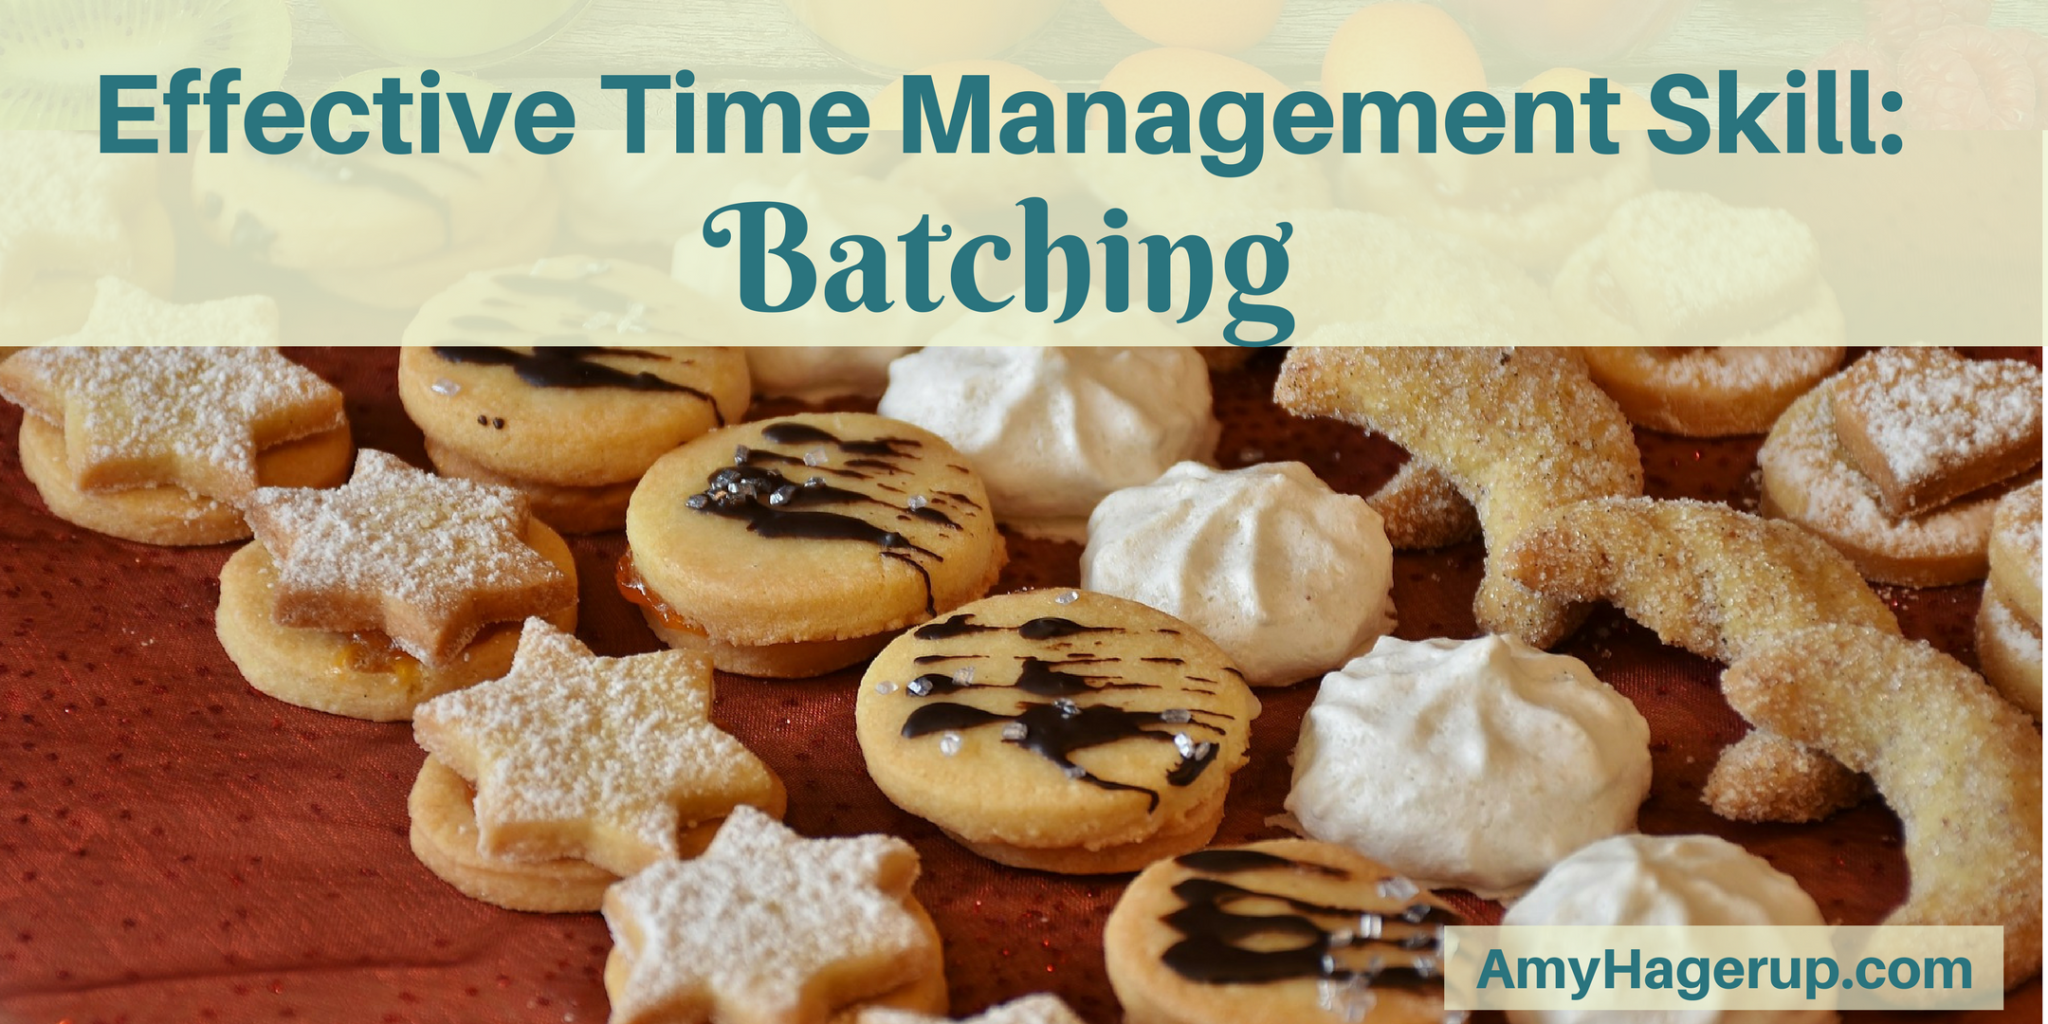 Check out this effective time management skill and give it a try.